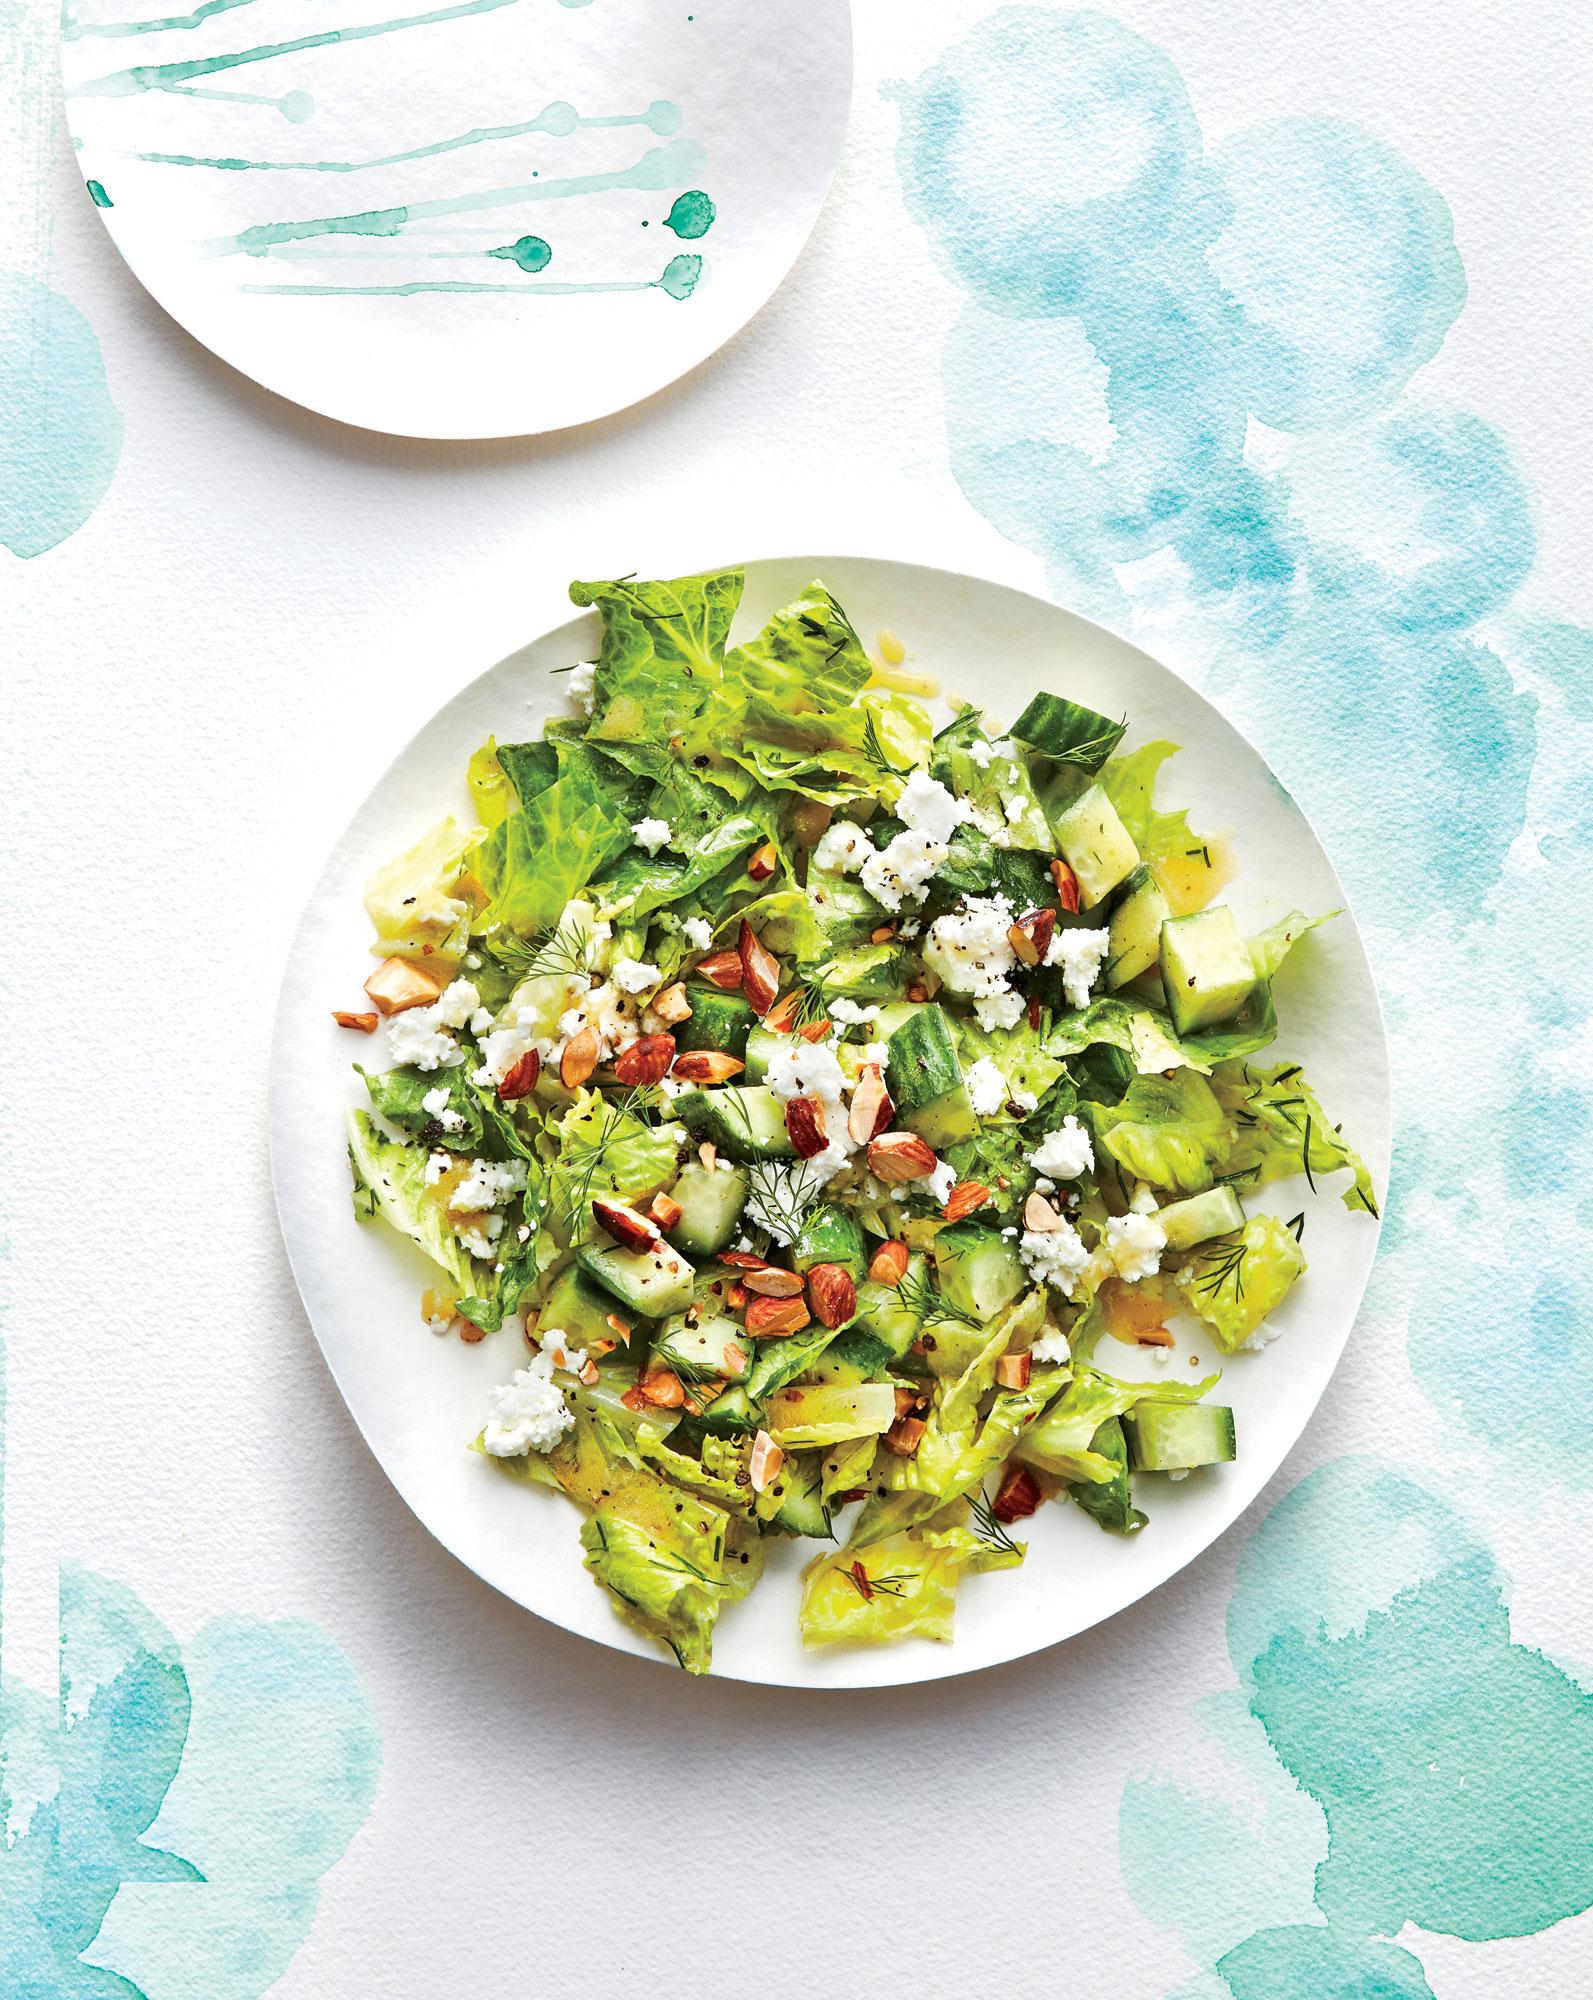 Crunchy Cucumber, Feta, and Almond Salad image_style=